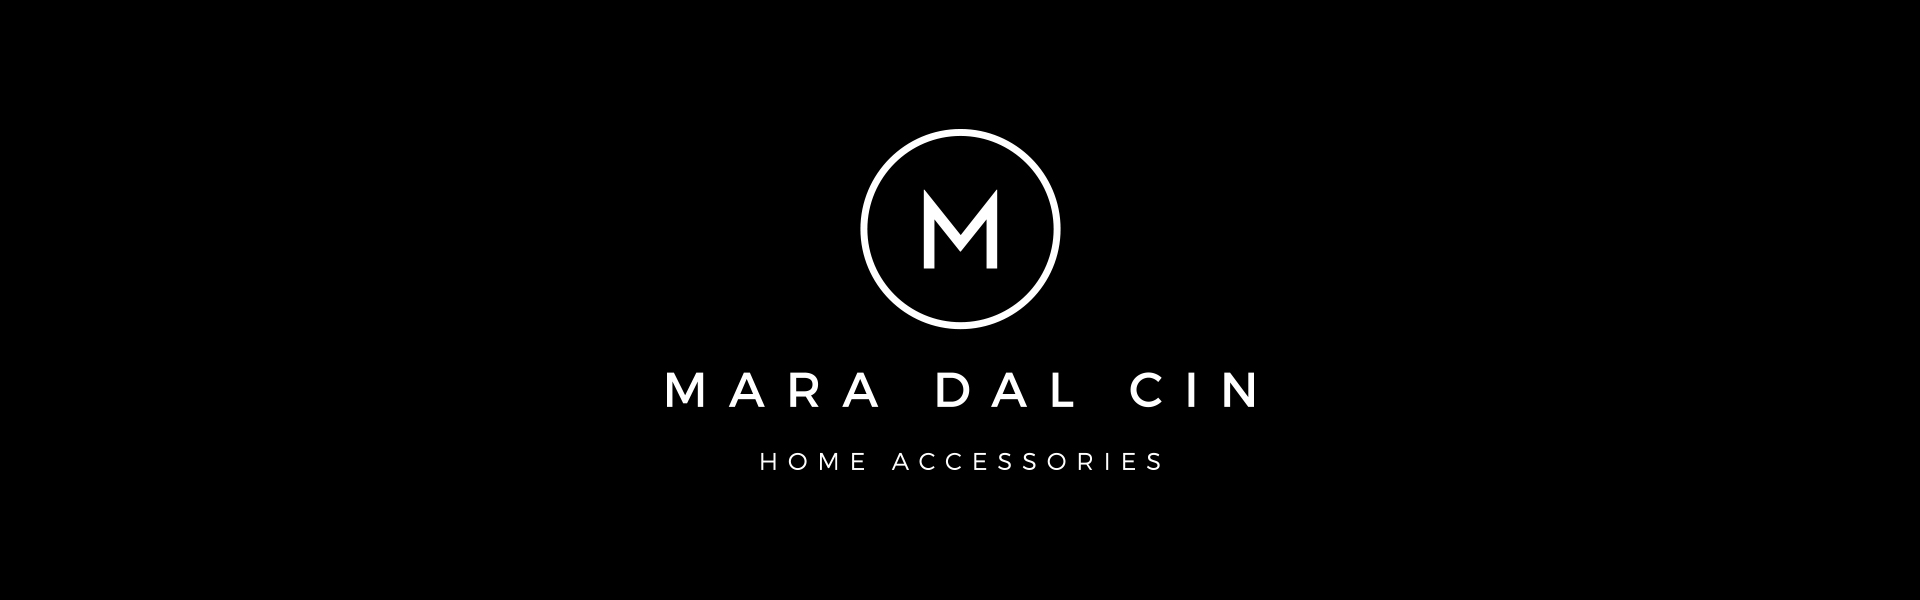 DFN Mara dal Cin catalogue download